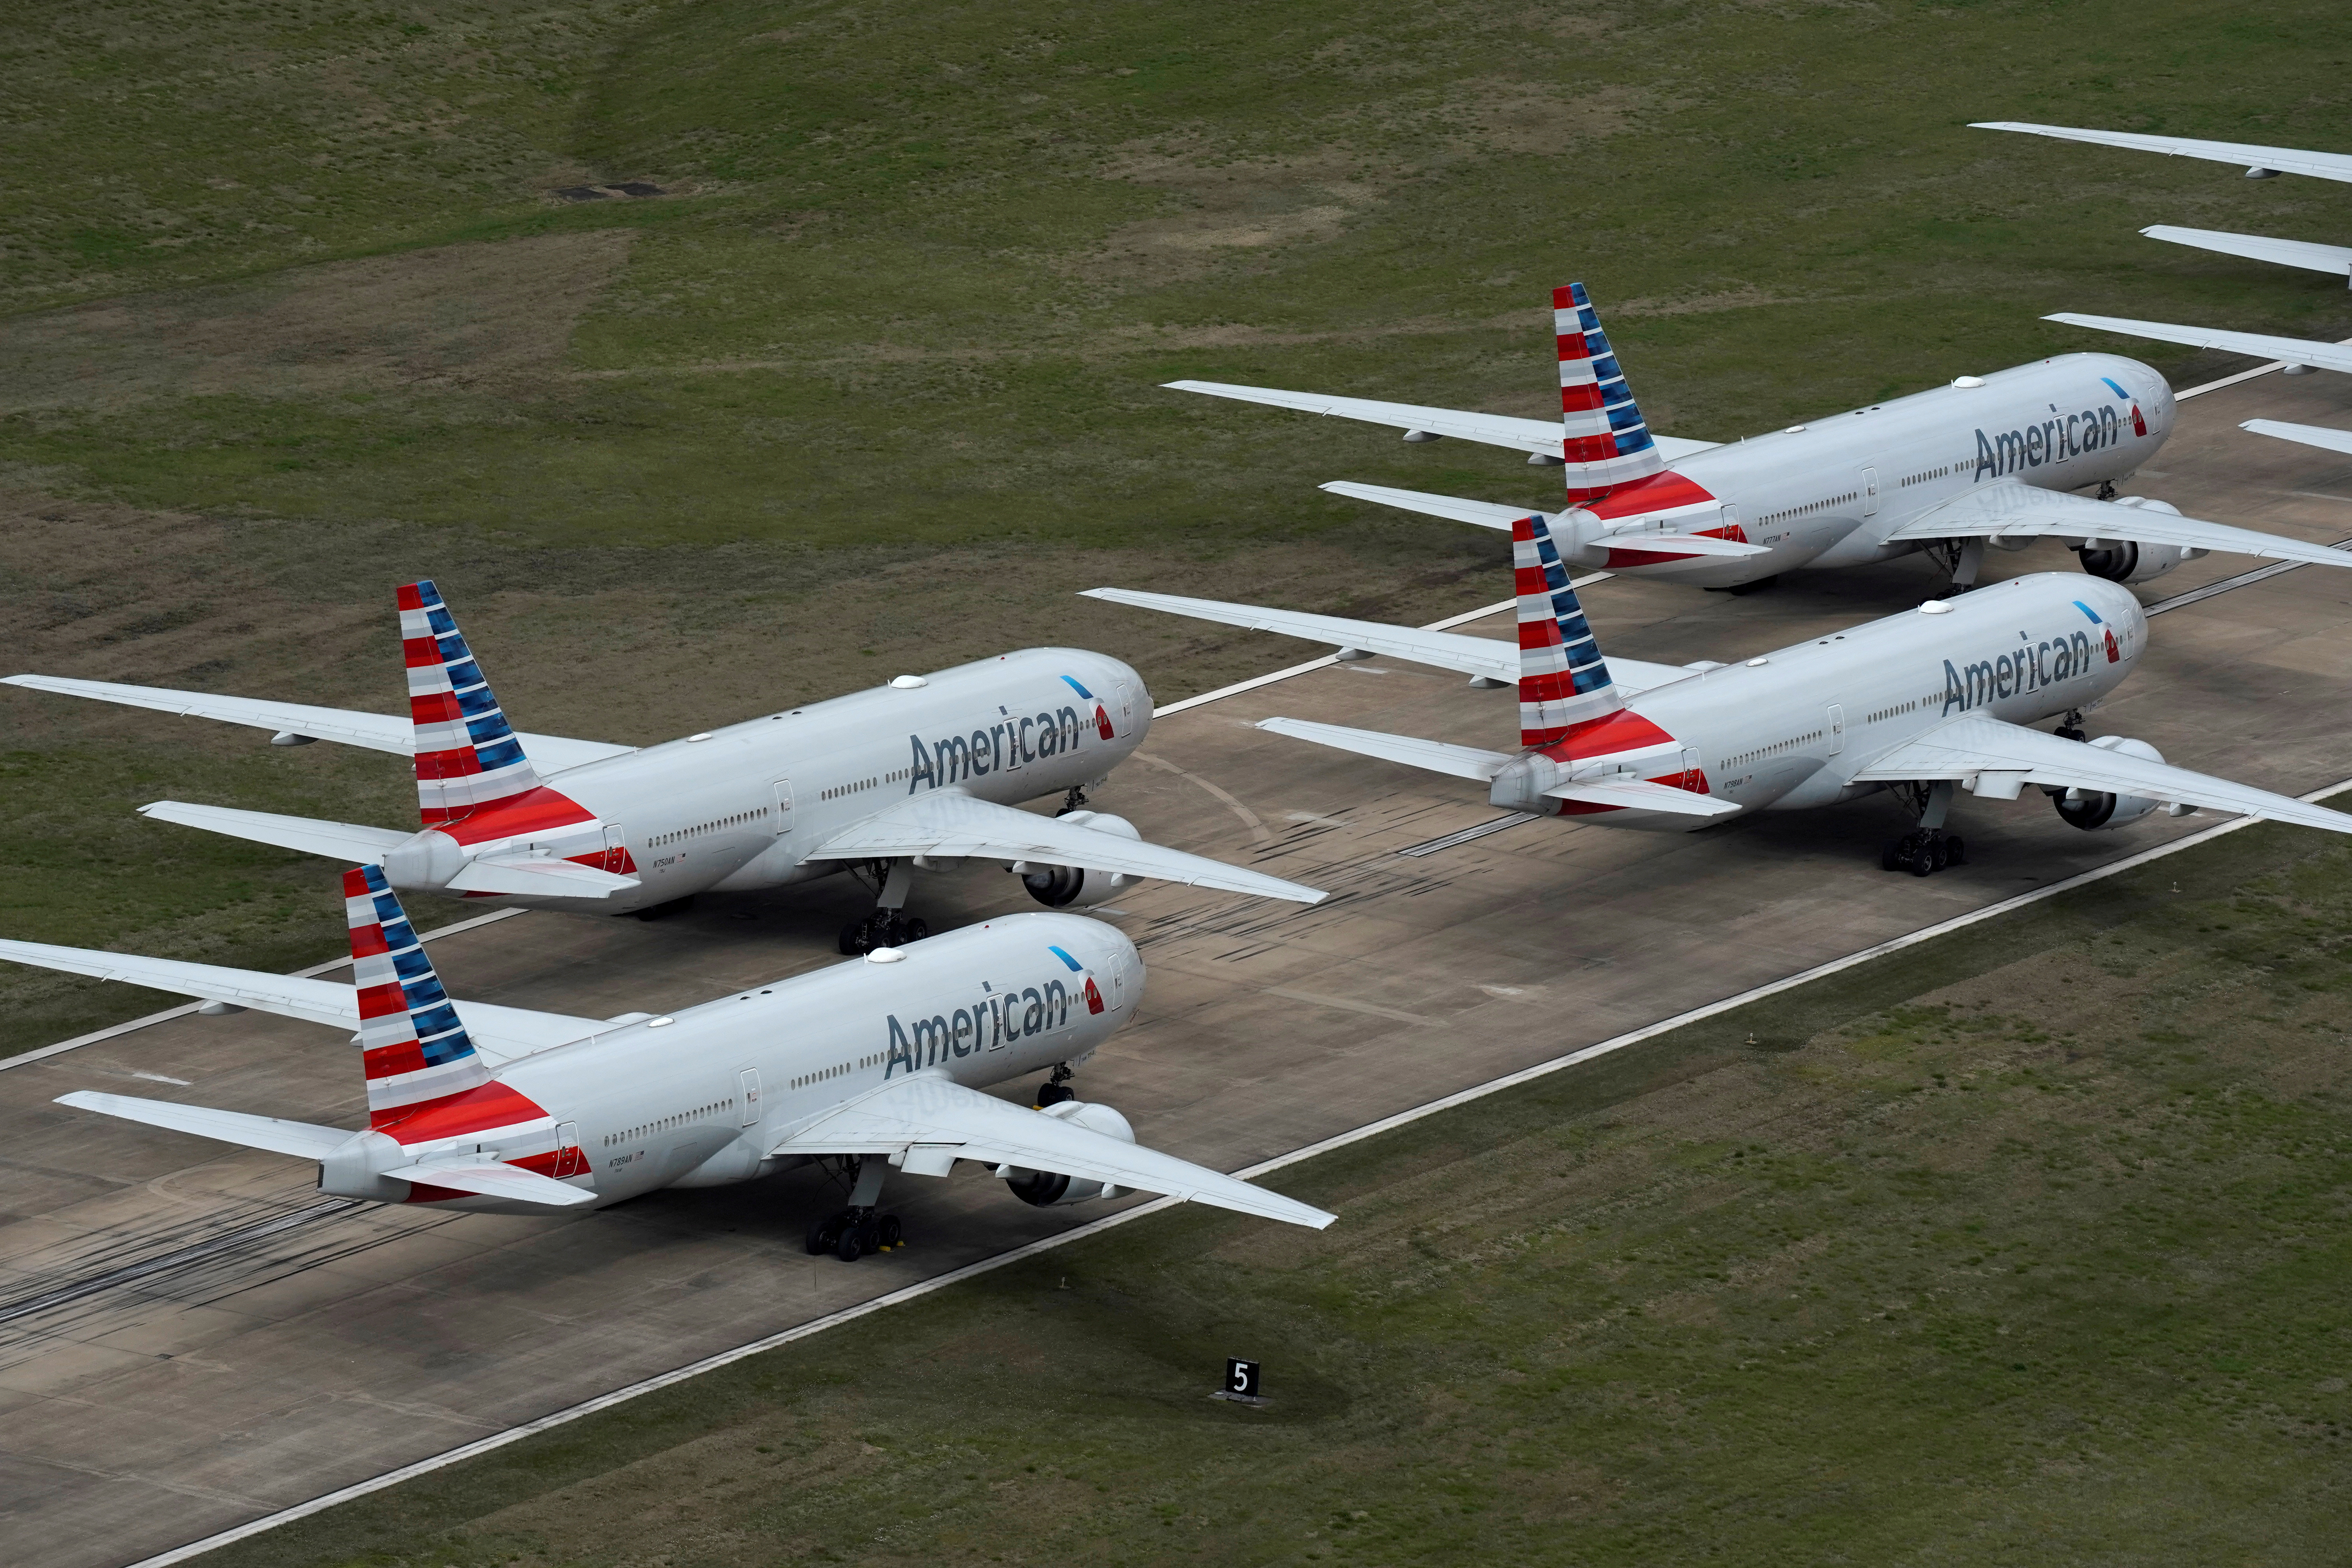 American Airlines passenger planes crowd a runway where they are parked due to flight reductions to slow the spread of coronavirus disease (COVID-19), at Tulsa International Airport in Tulsa, Oklahoma, U.S. March 23, 2020. REUTERS/Nick Oxford/File Photo